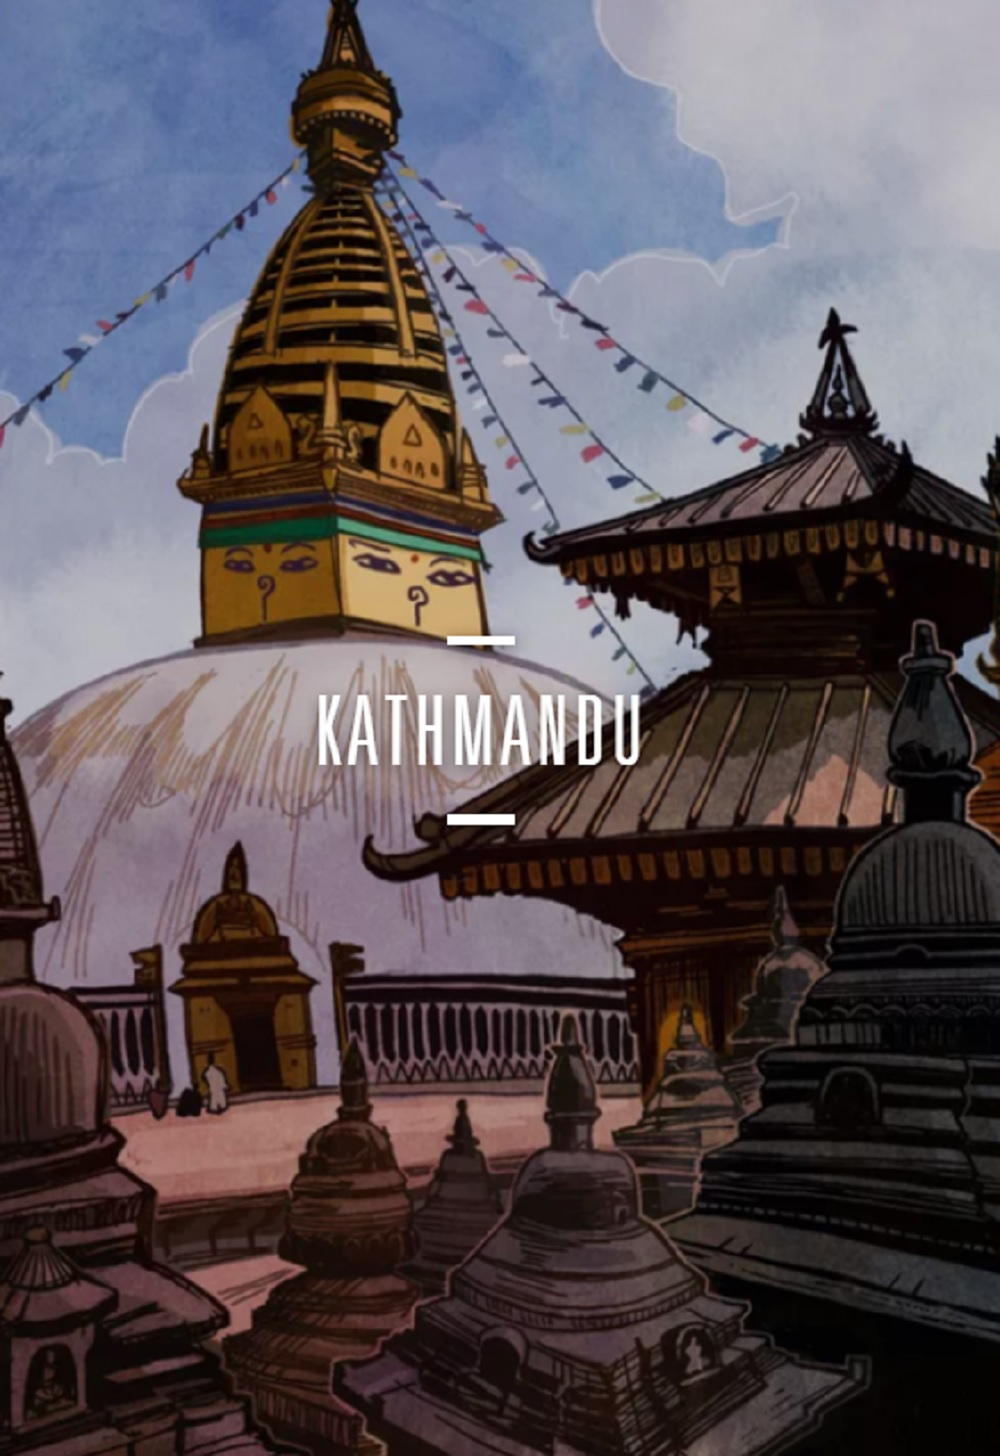 Going to Kathmandu? Here is a good online guide!